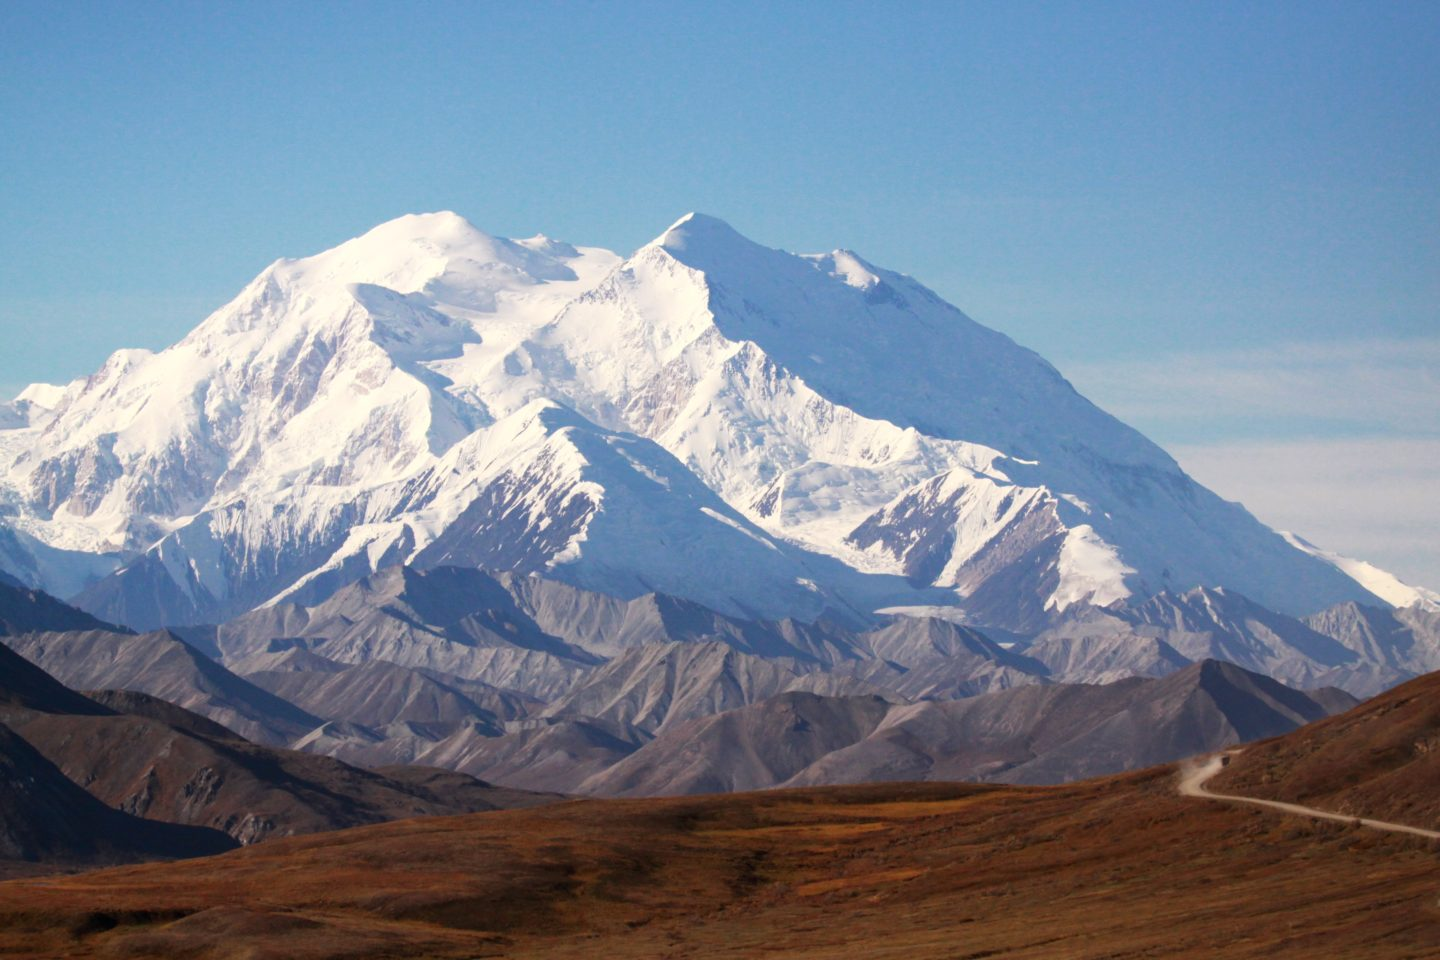 Mount Denali, the tallest mountain in the world and the highest peak in the Americas